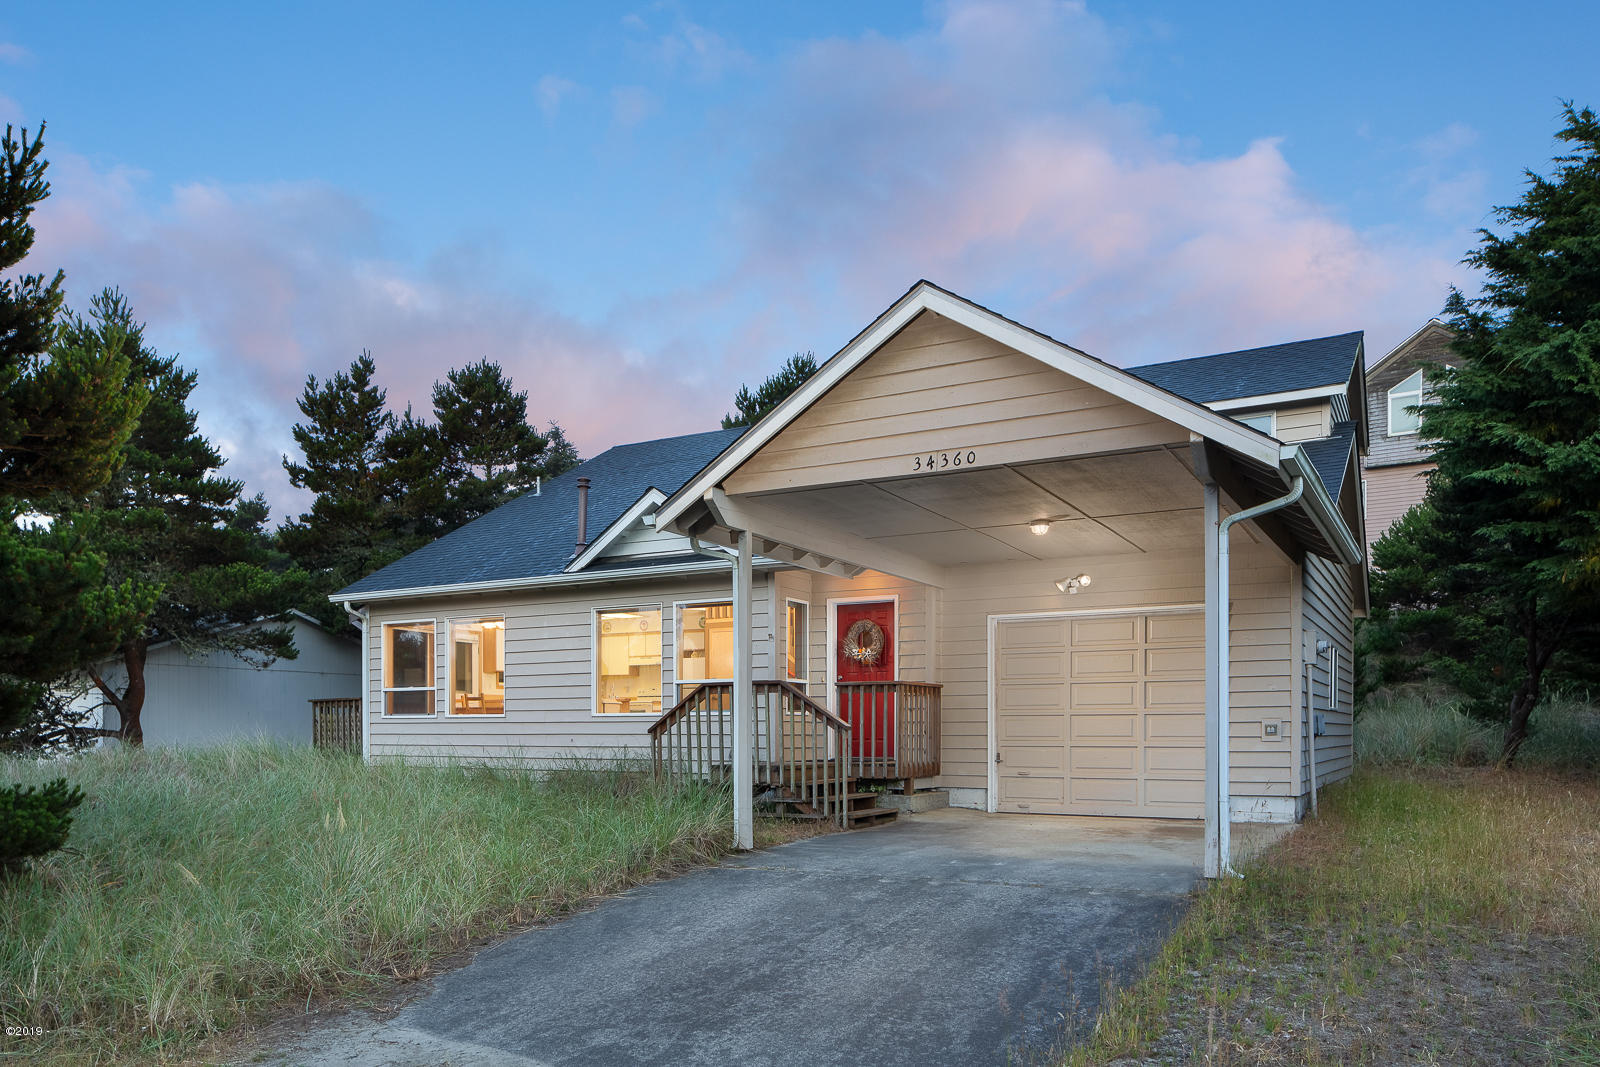 34360 Sea Swallow Dr, Pacific City, OR 97135 - 34360SeaSwallow-01